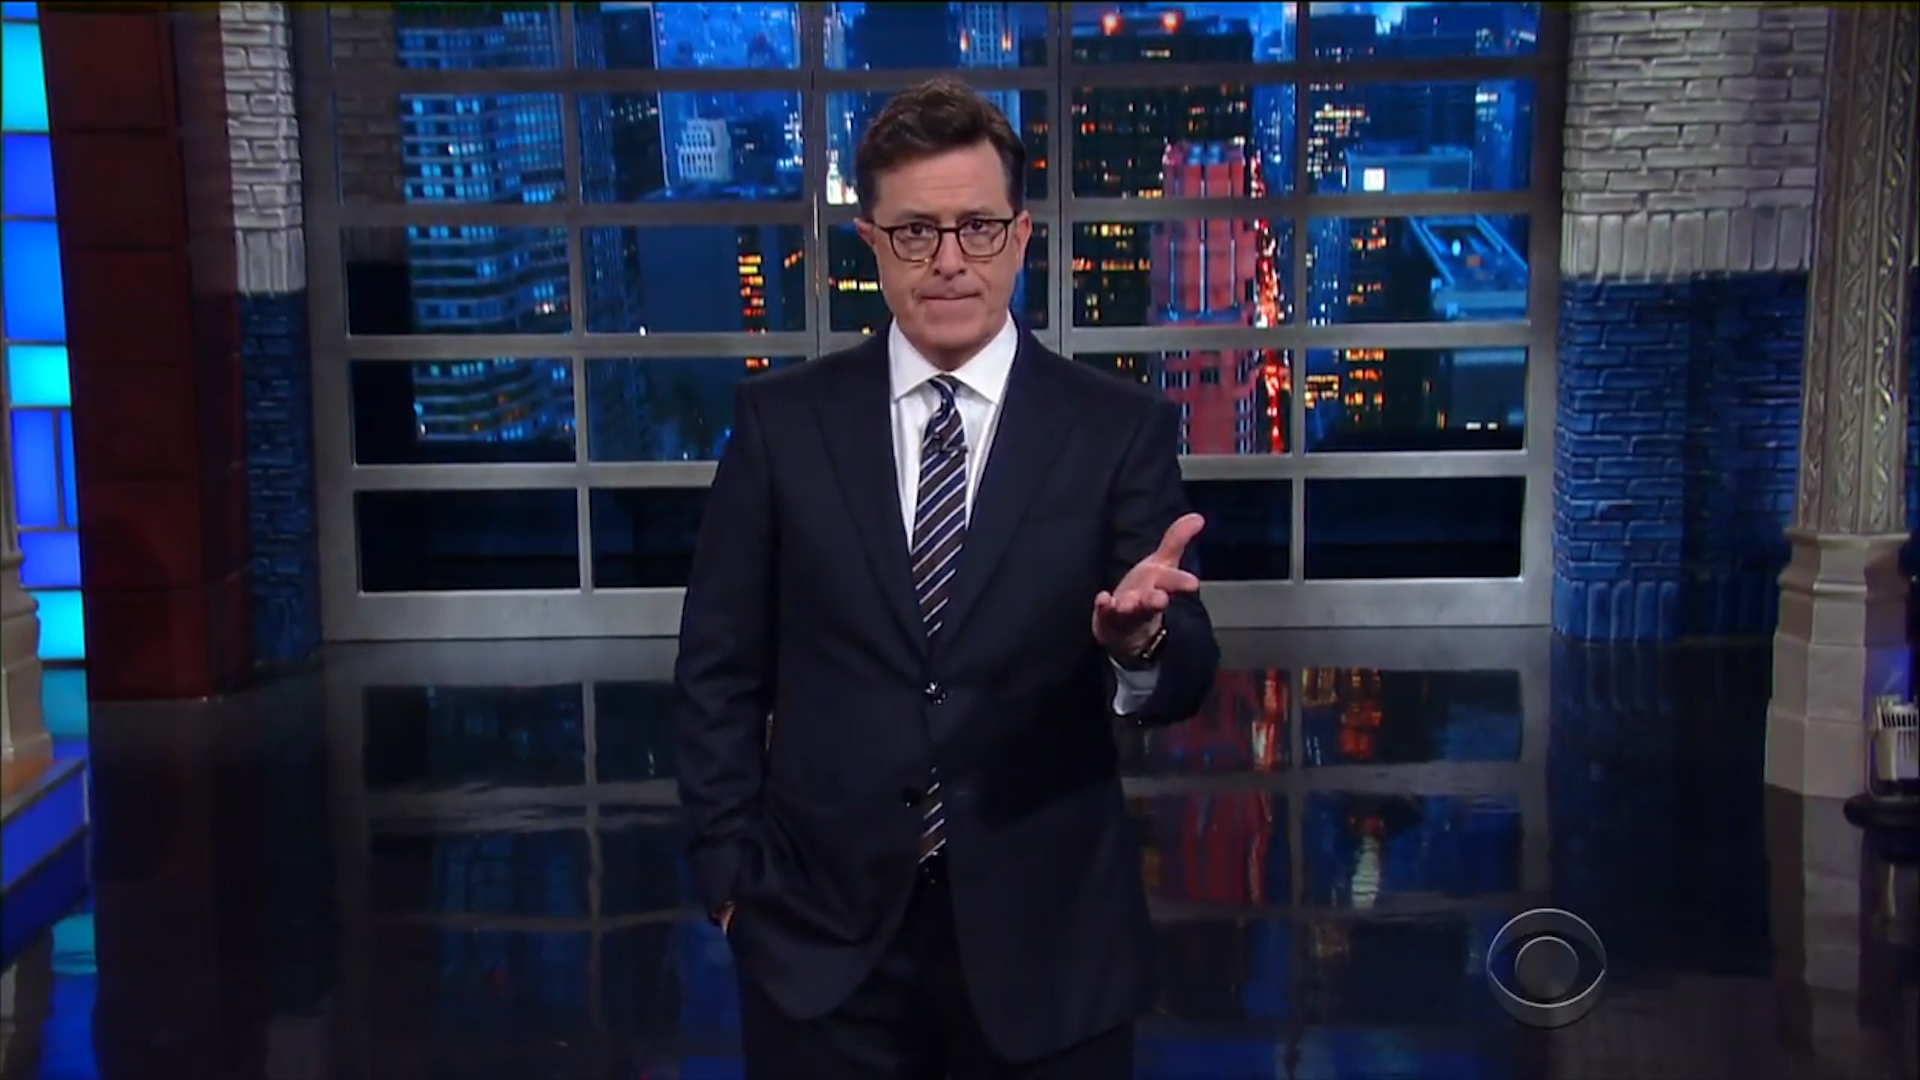 Stephen Colbert rips apart Donald Trump's first 100 days